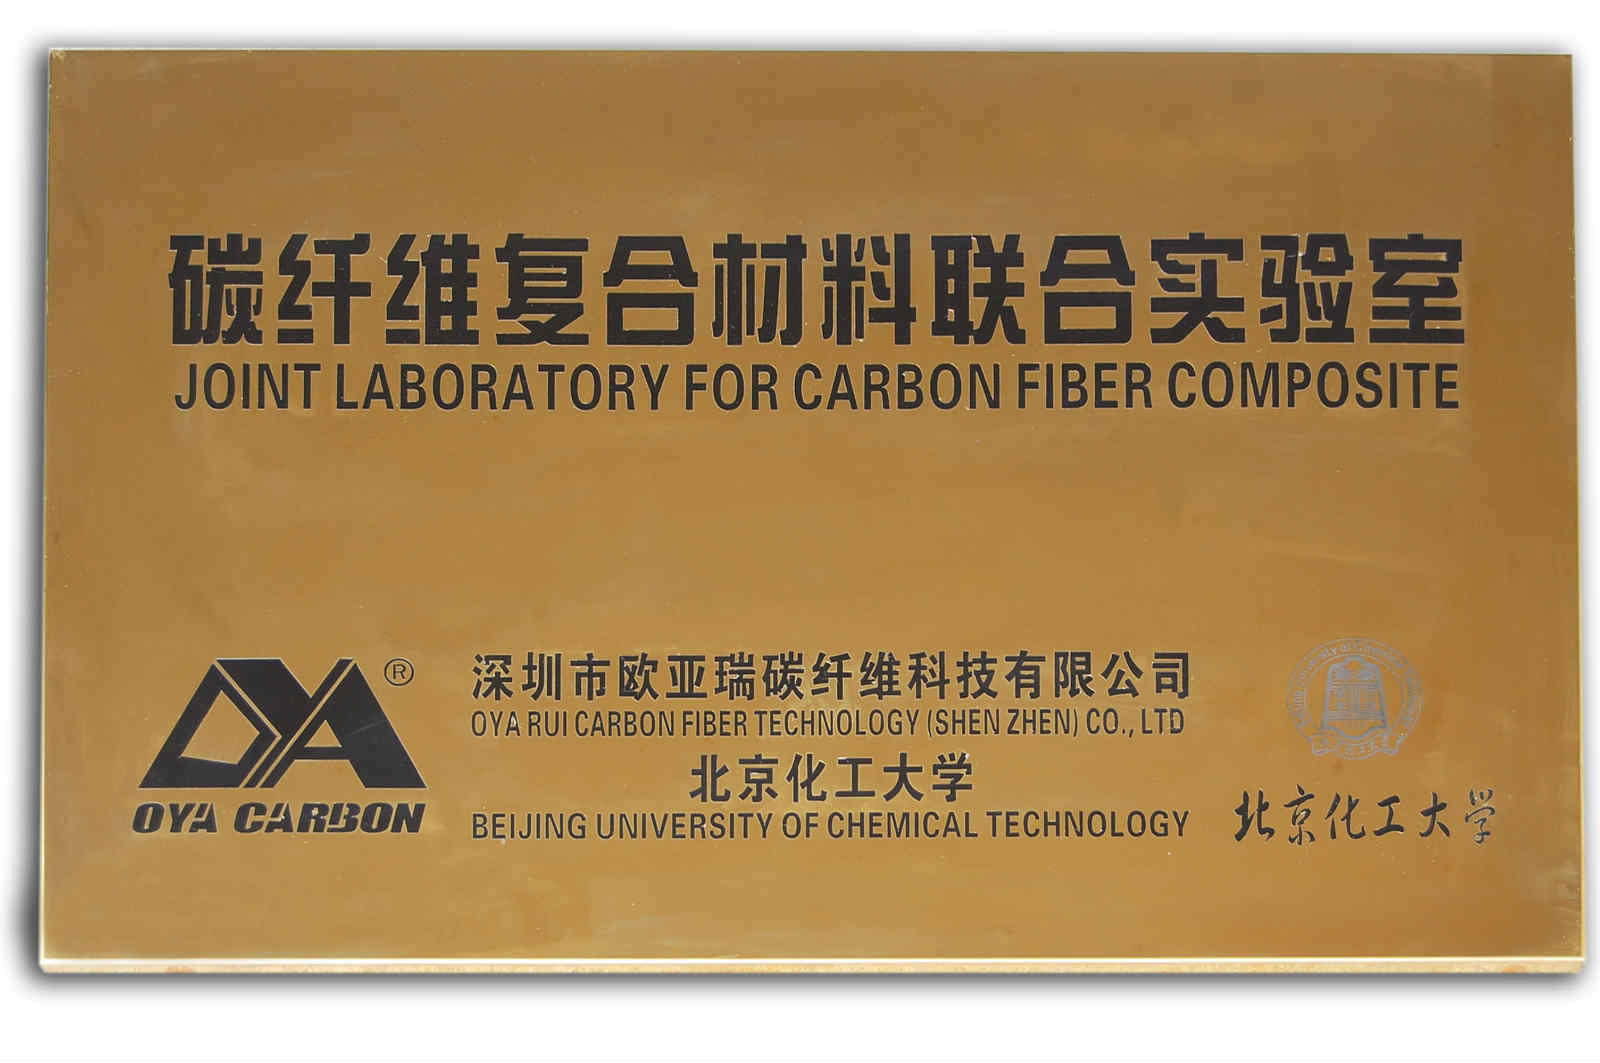 Collaborated University--Beijing University of Chemical Technology